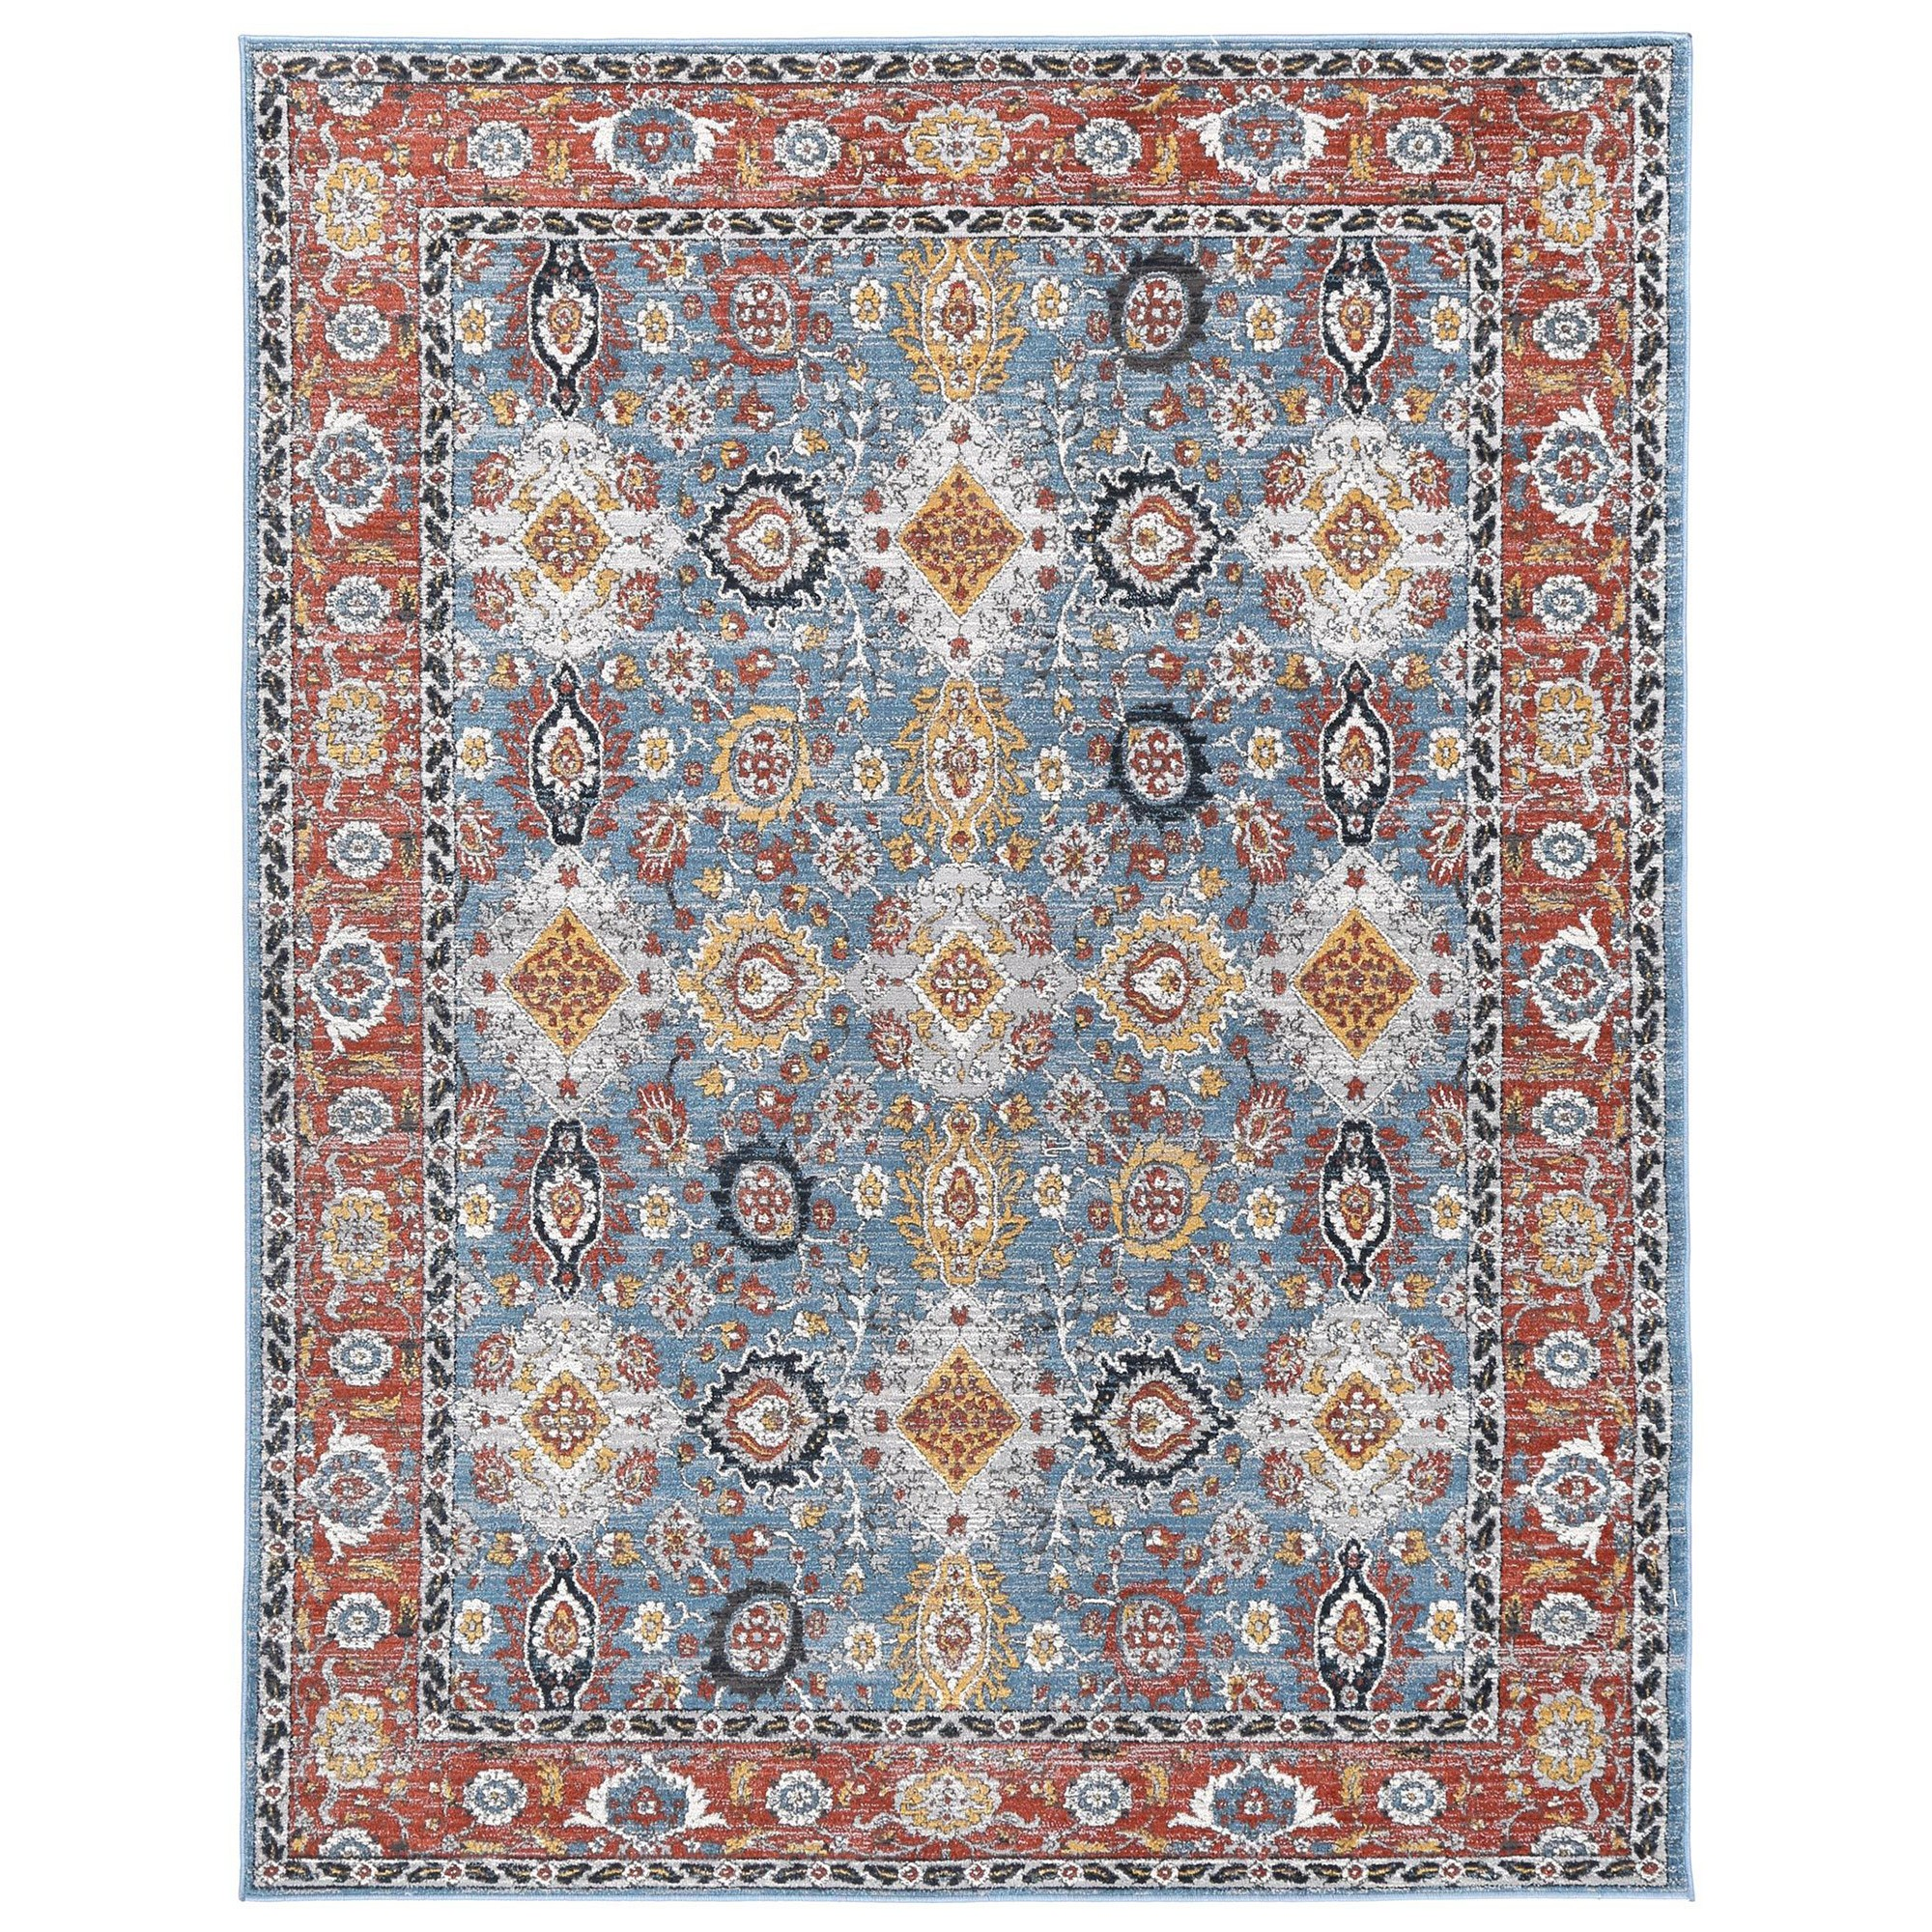 Havana No.11 Transitional Oriental Rug, 380x280cm, Blue / Rust